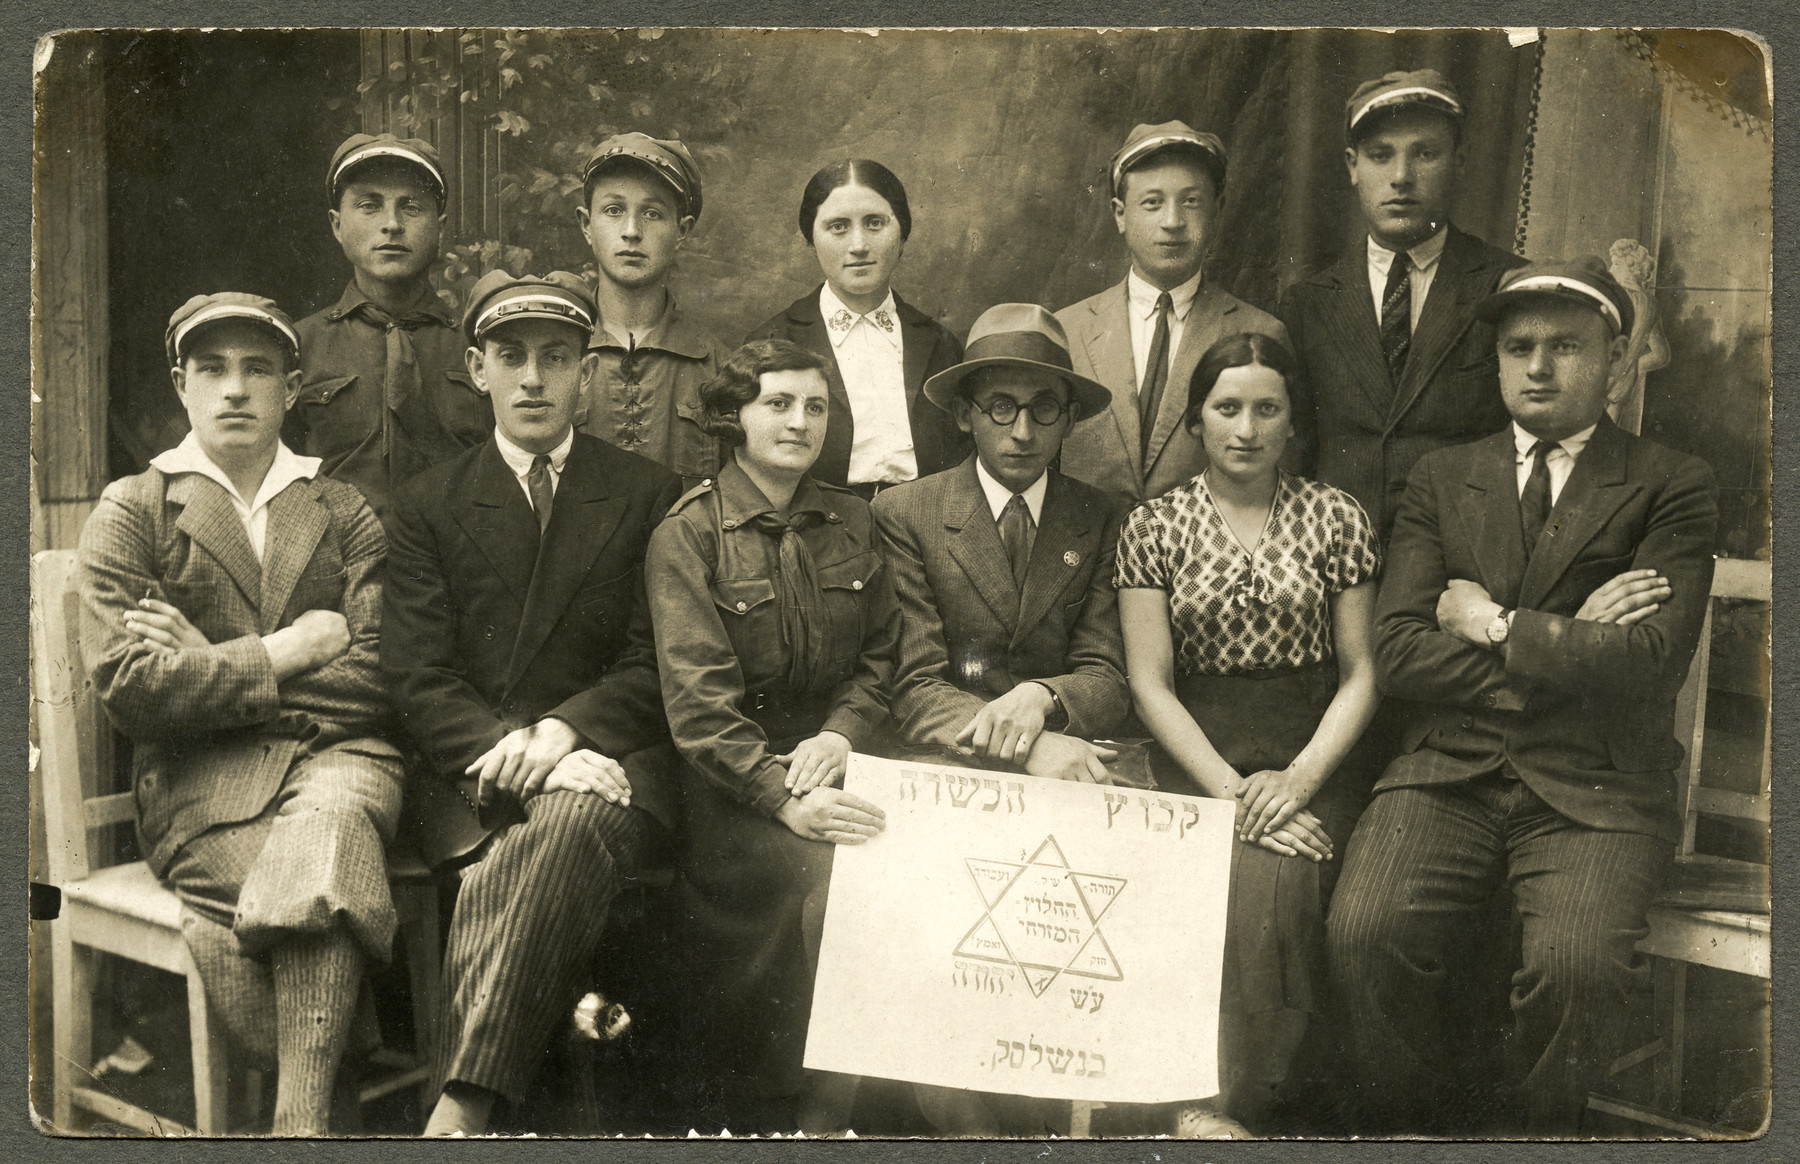 Asher Fetherhar (later Zidon) poses with members of the Hechalutz Mizrachi hachshara in Nasielsk.